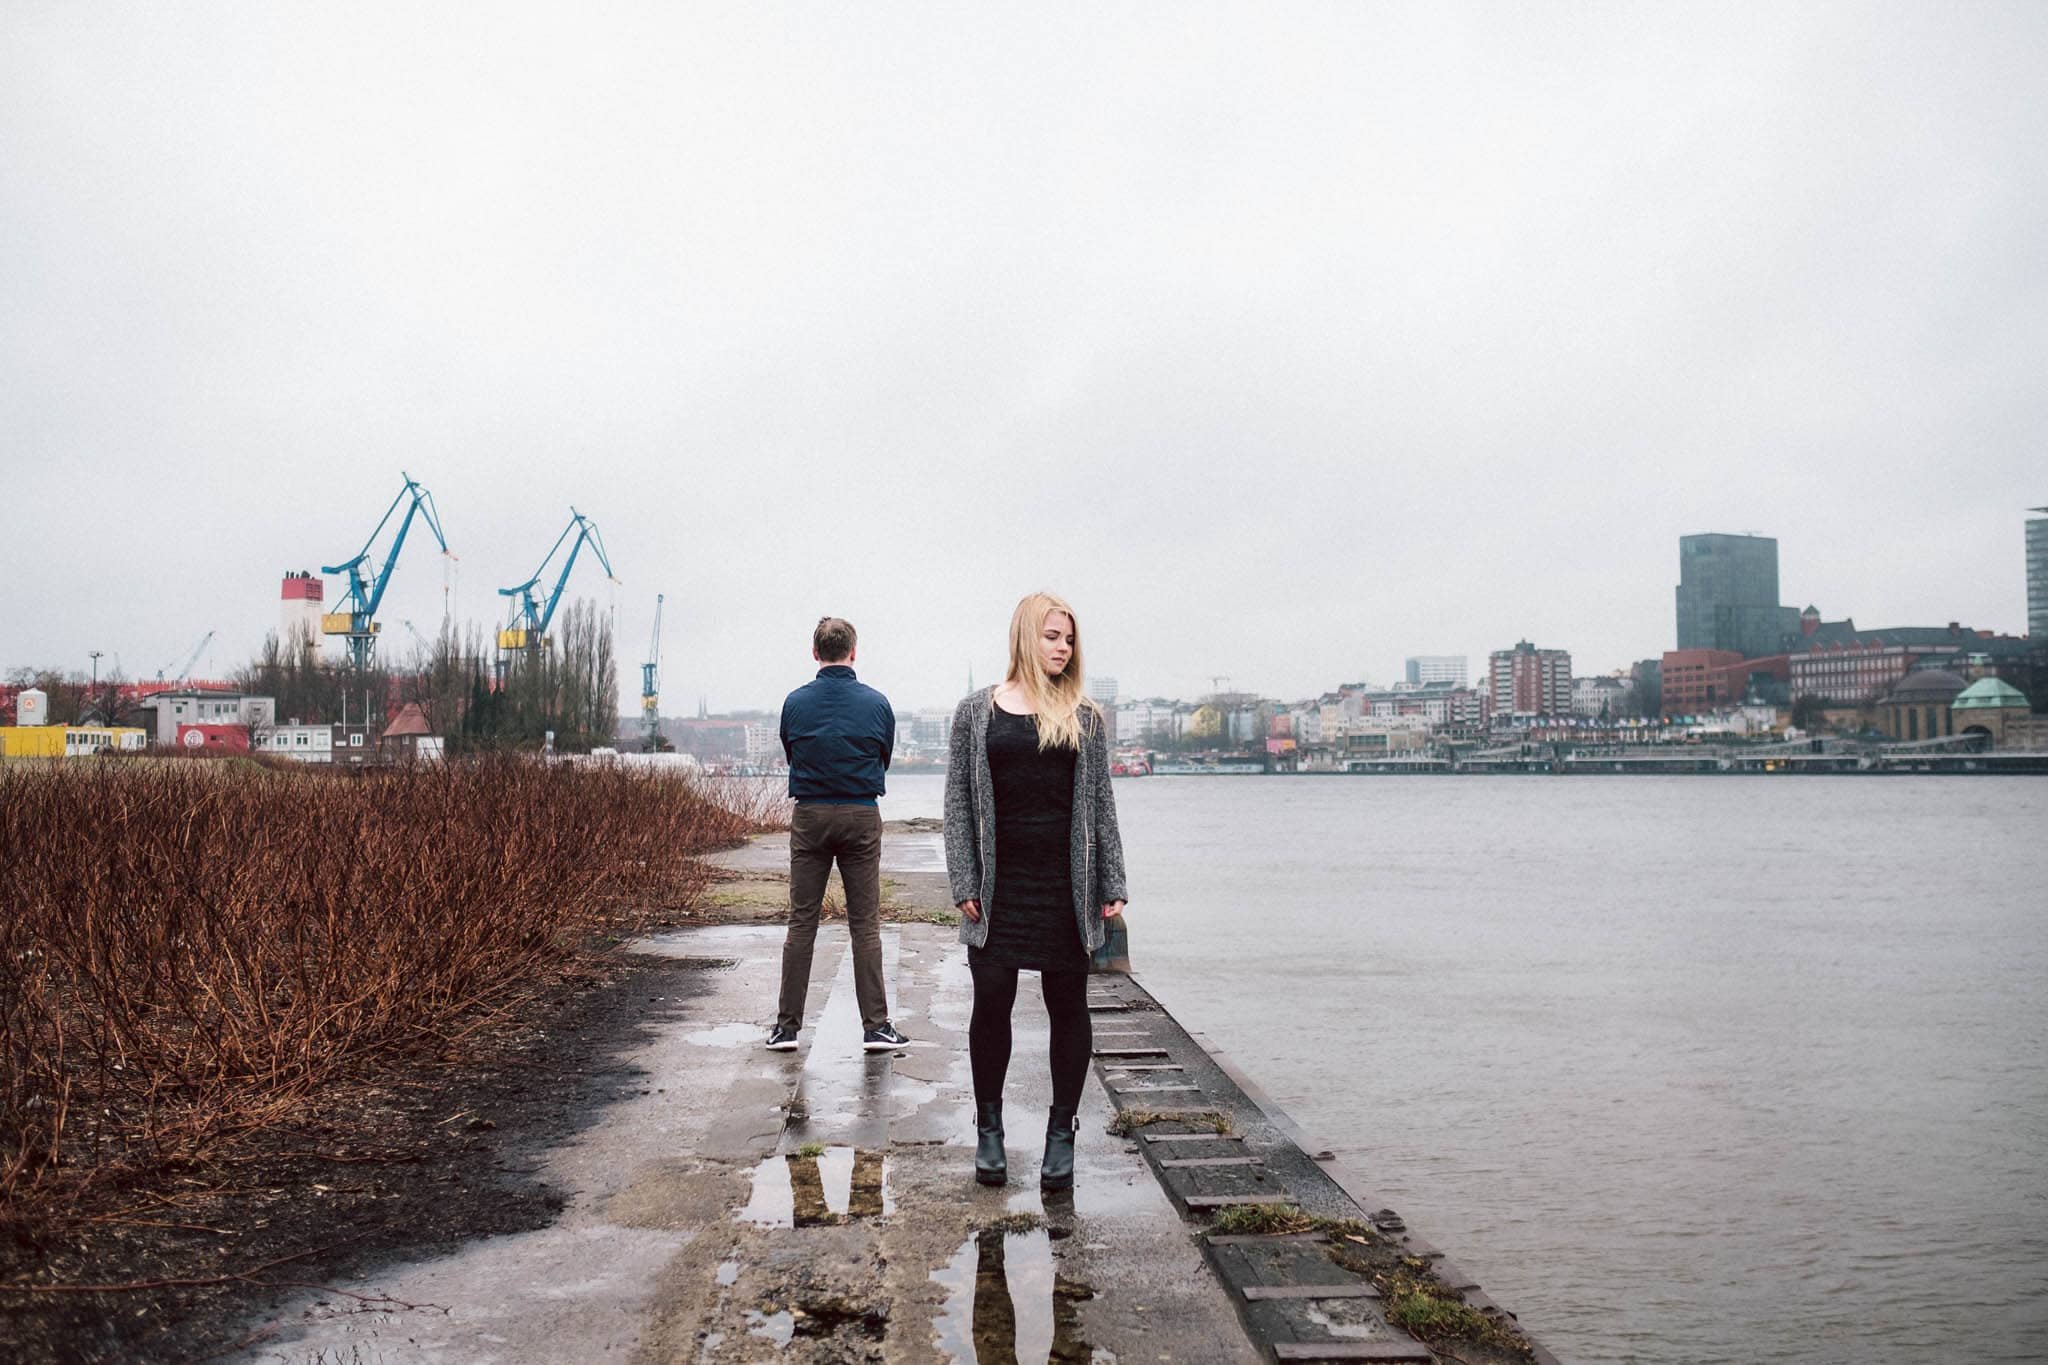 Engagementshooting, Hochzeitsfieber by Photo-Schomburg, Pärchenshoot, Hamburg, Elbe, Hamburger Hafen, Hochzeitsfotograf, Wedding, Coupleshoot, Hochzeitsfotografie-5